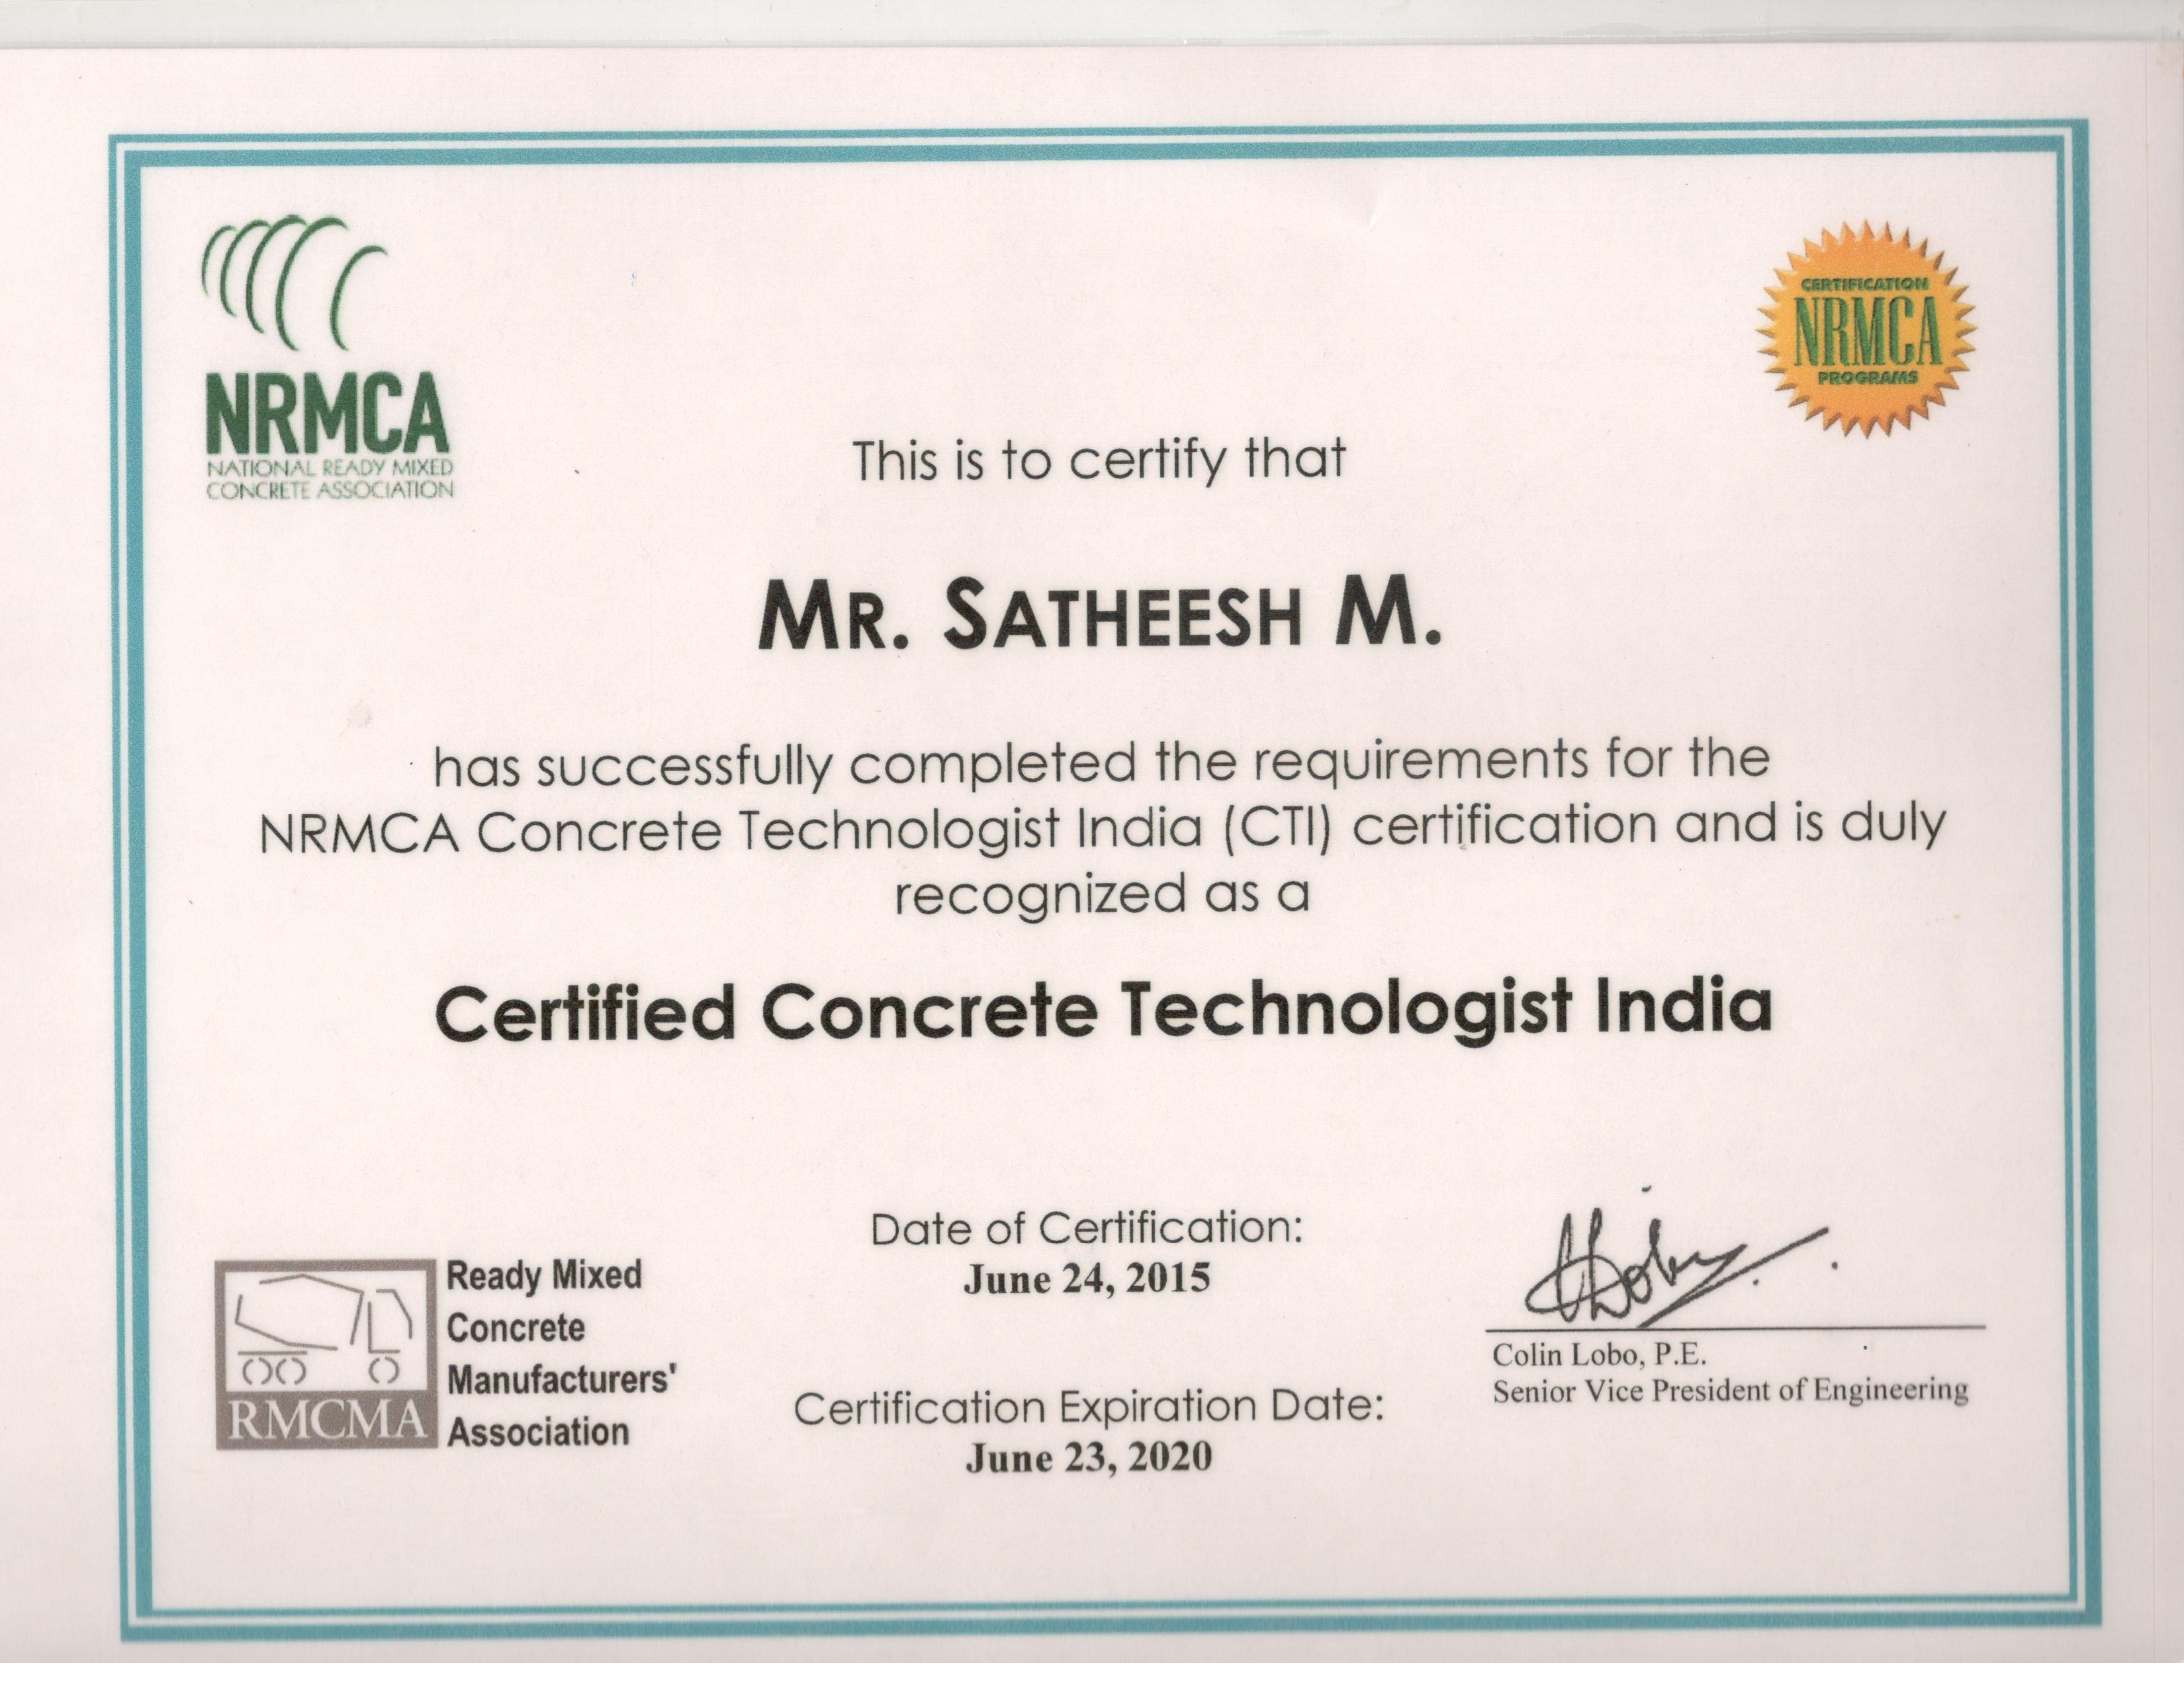 Amaze concrete products private limited for the fourth batch of concrete technologist india cti training and certification program conducted during jun 20 24 2015 at lts leadership 1betcityfo Gallery